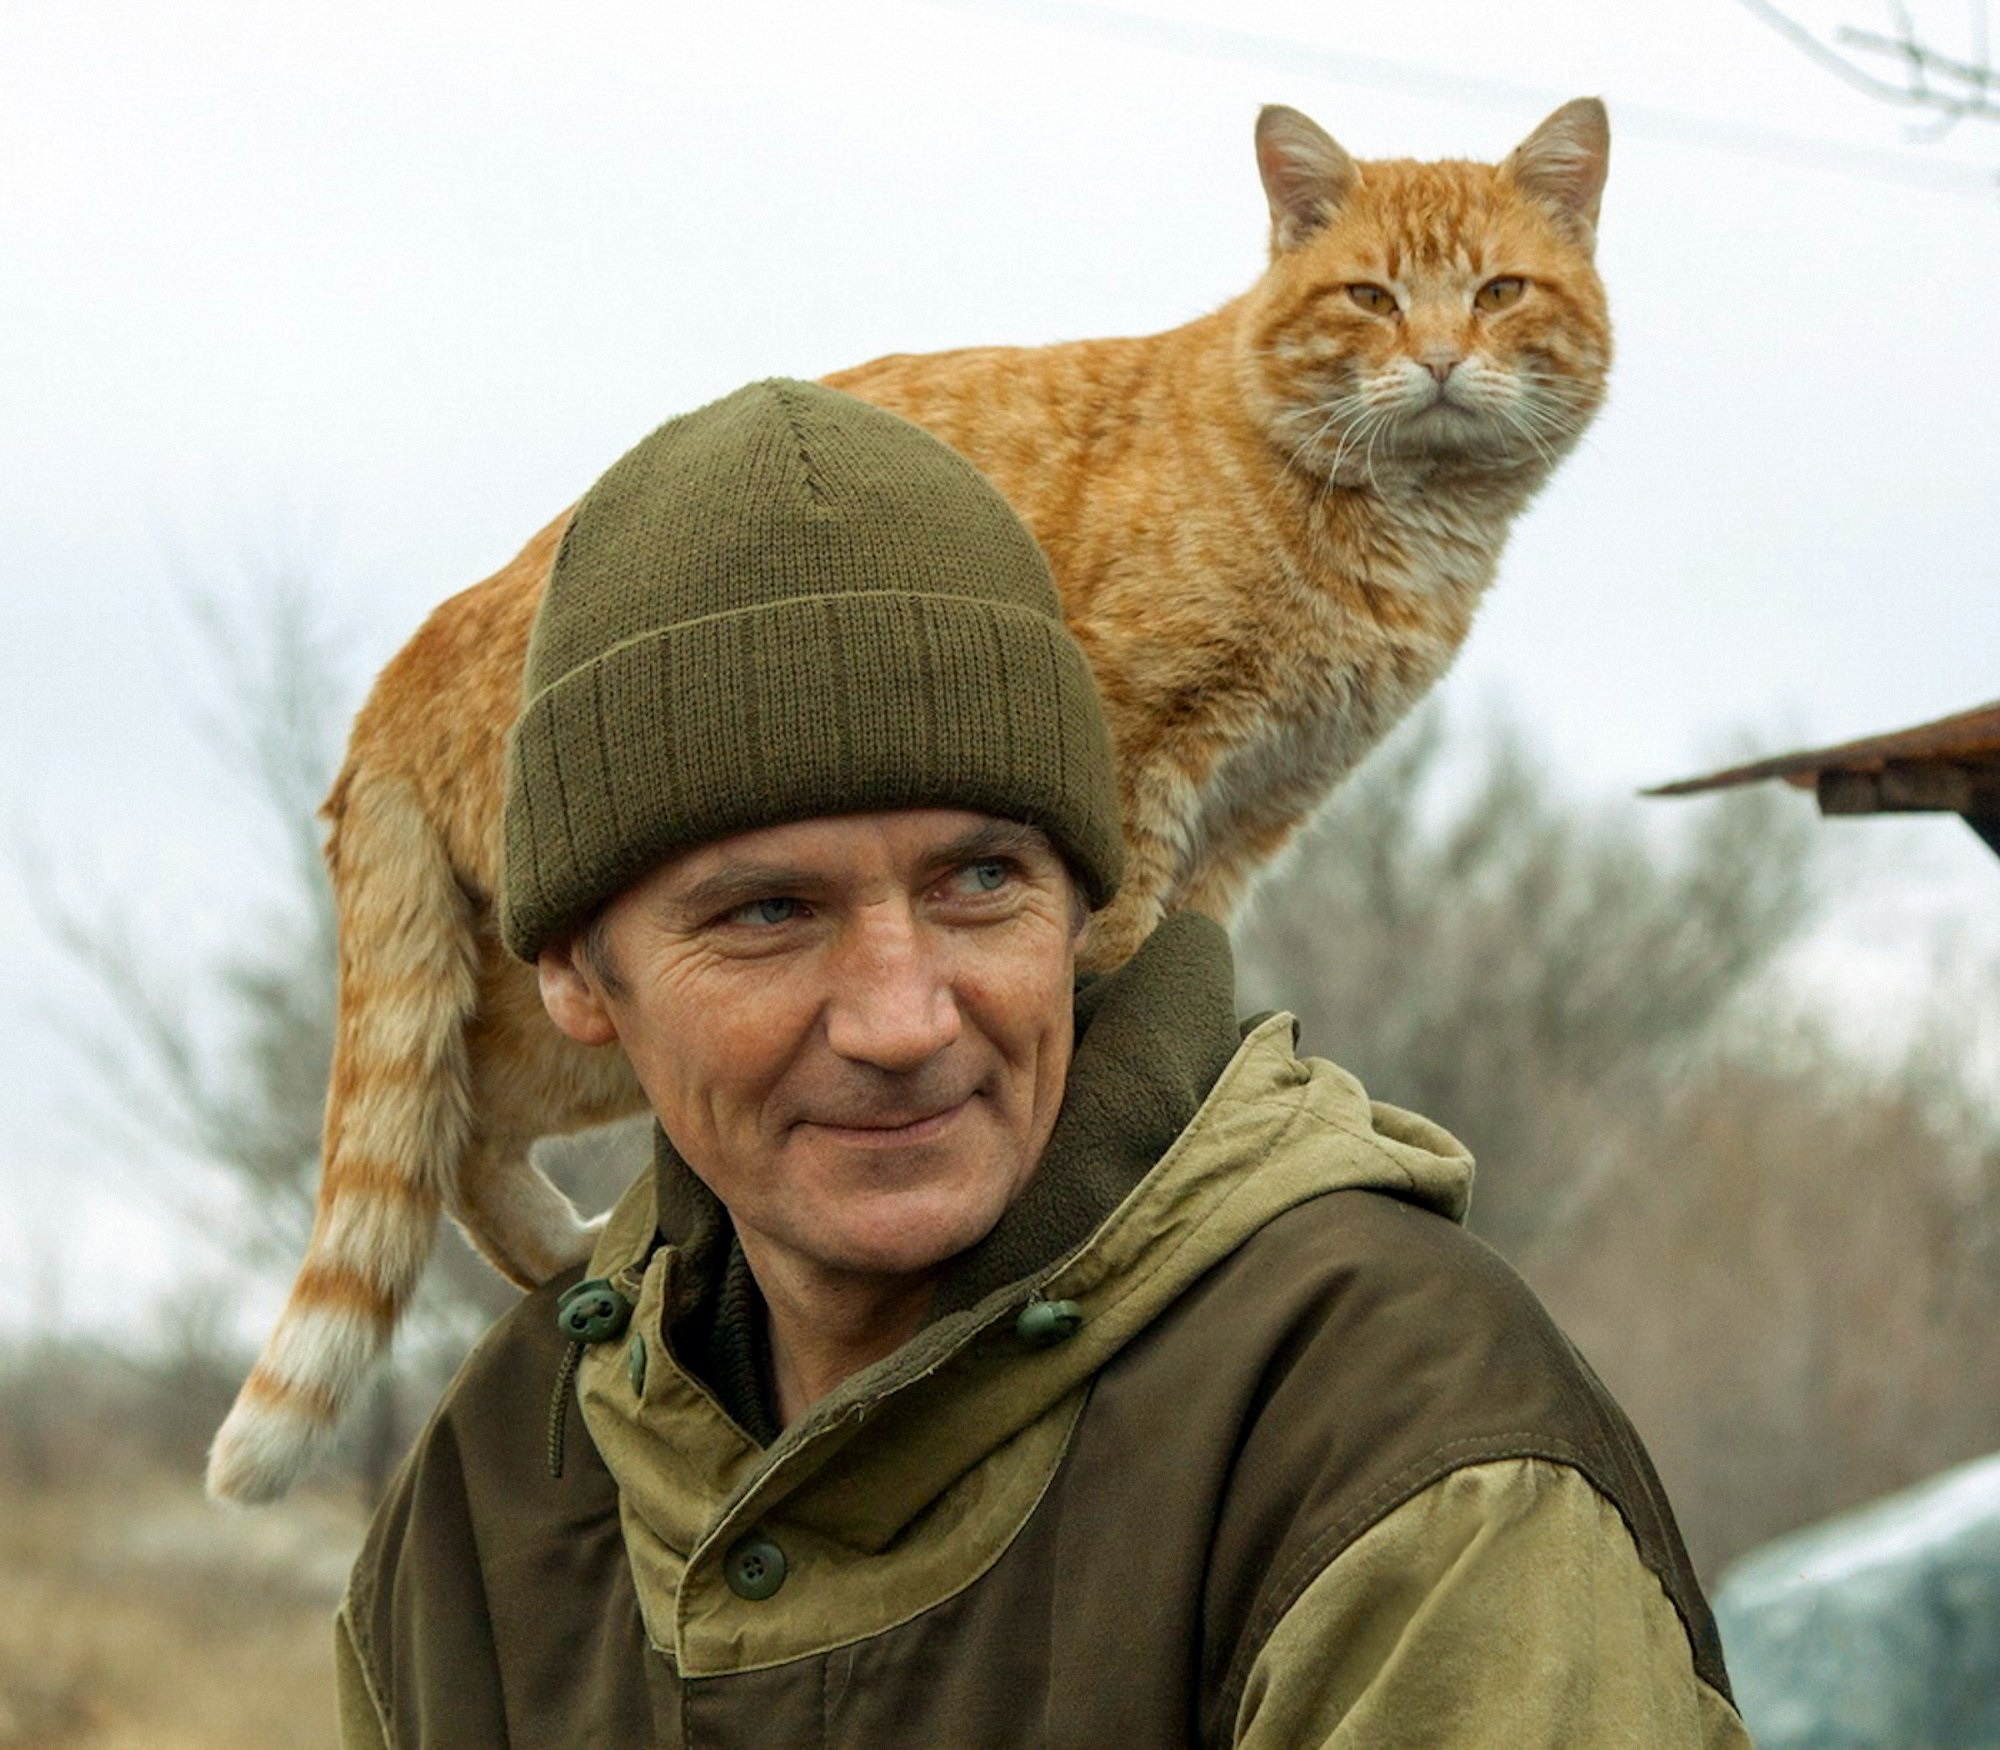 00 LNR 2015 01 soldier and cat